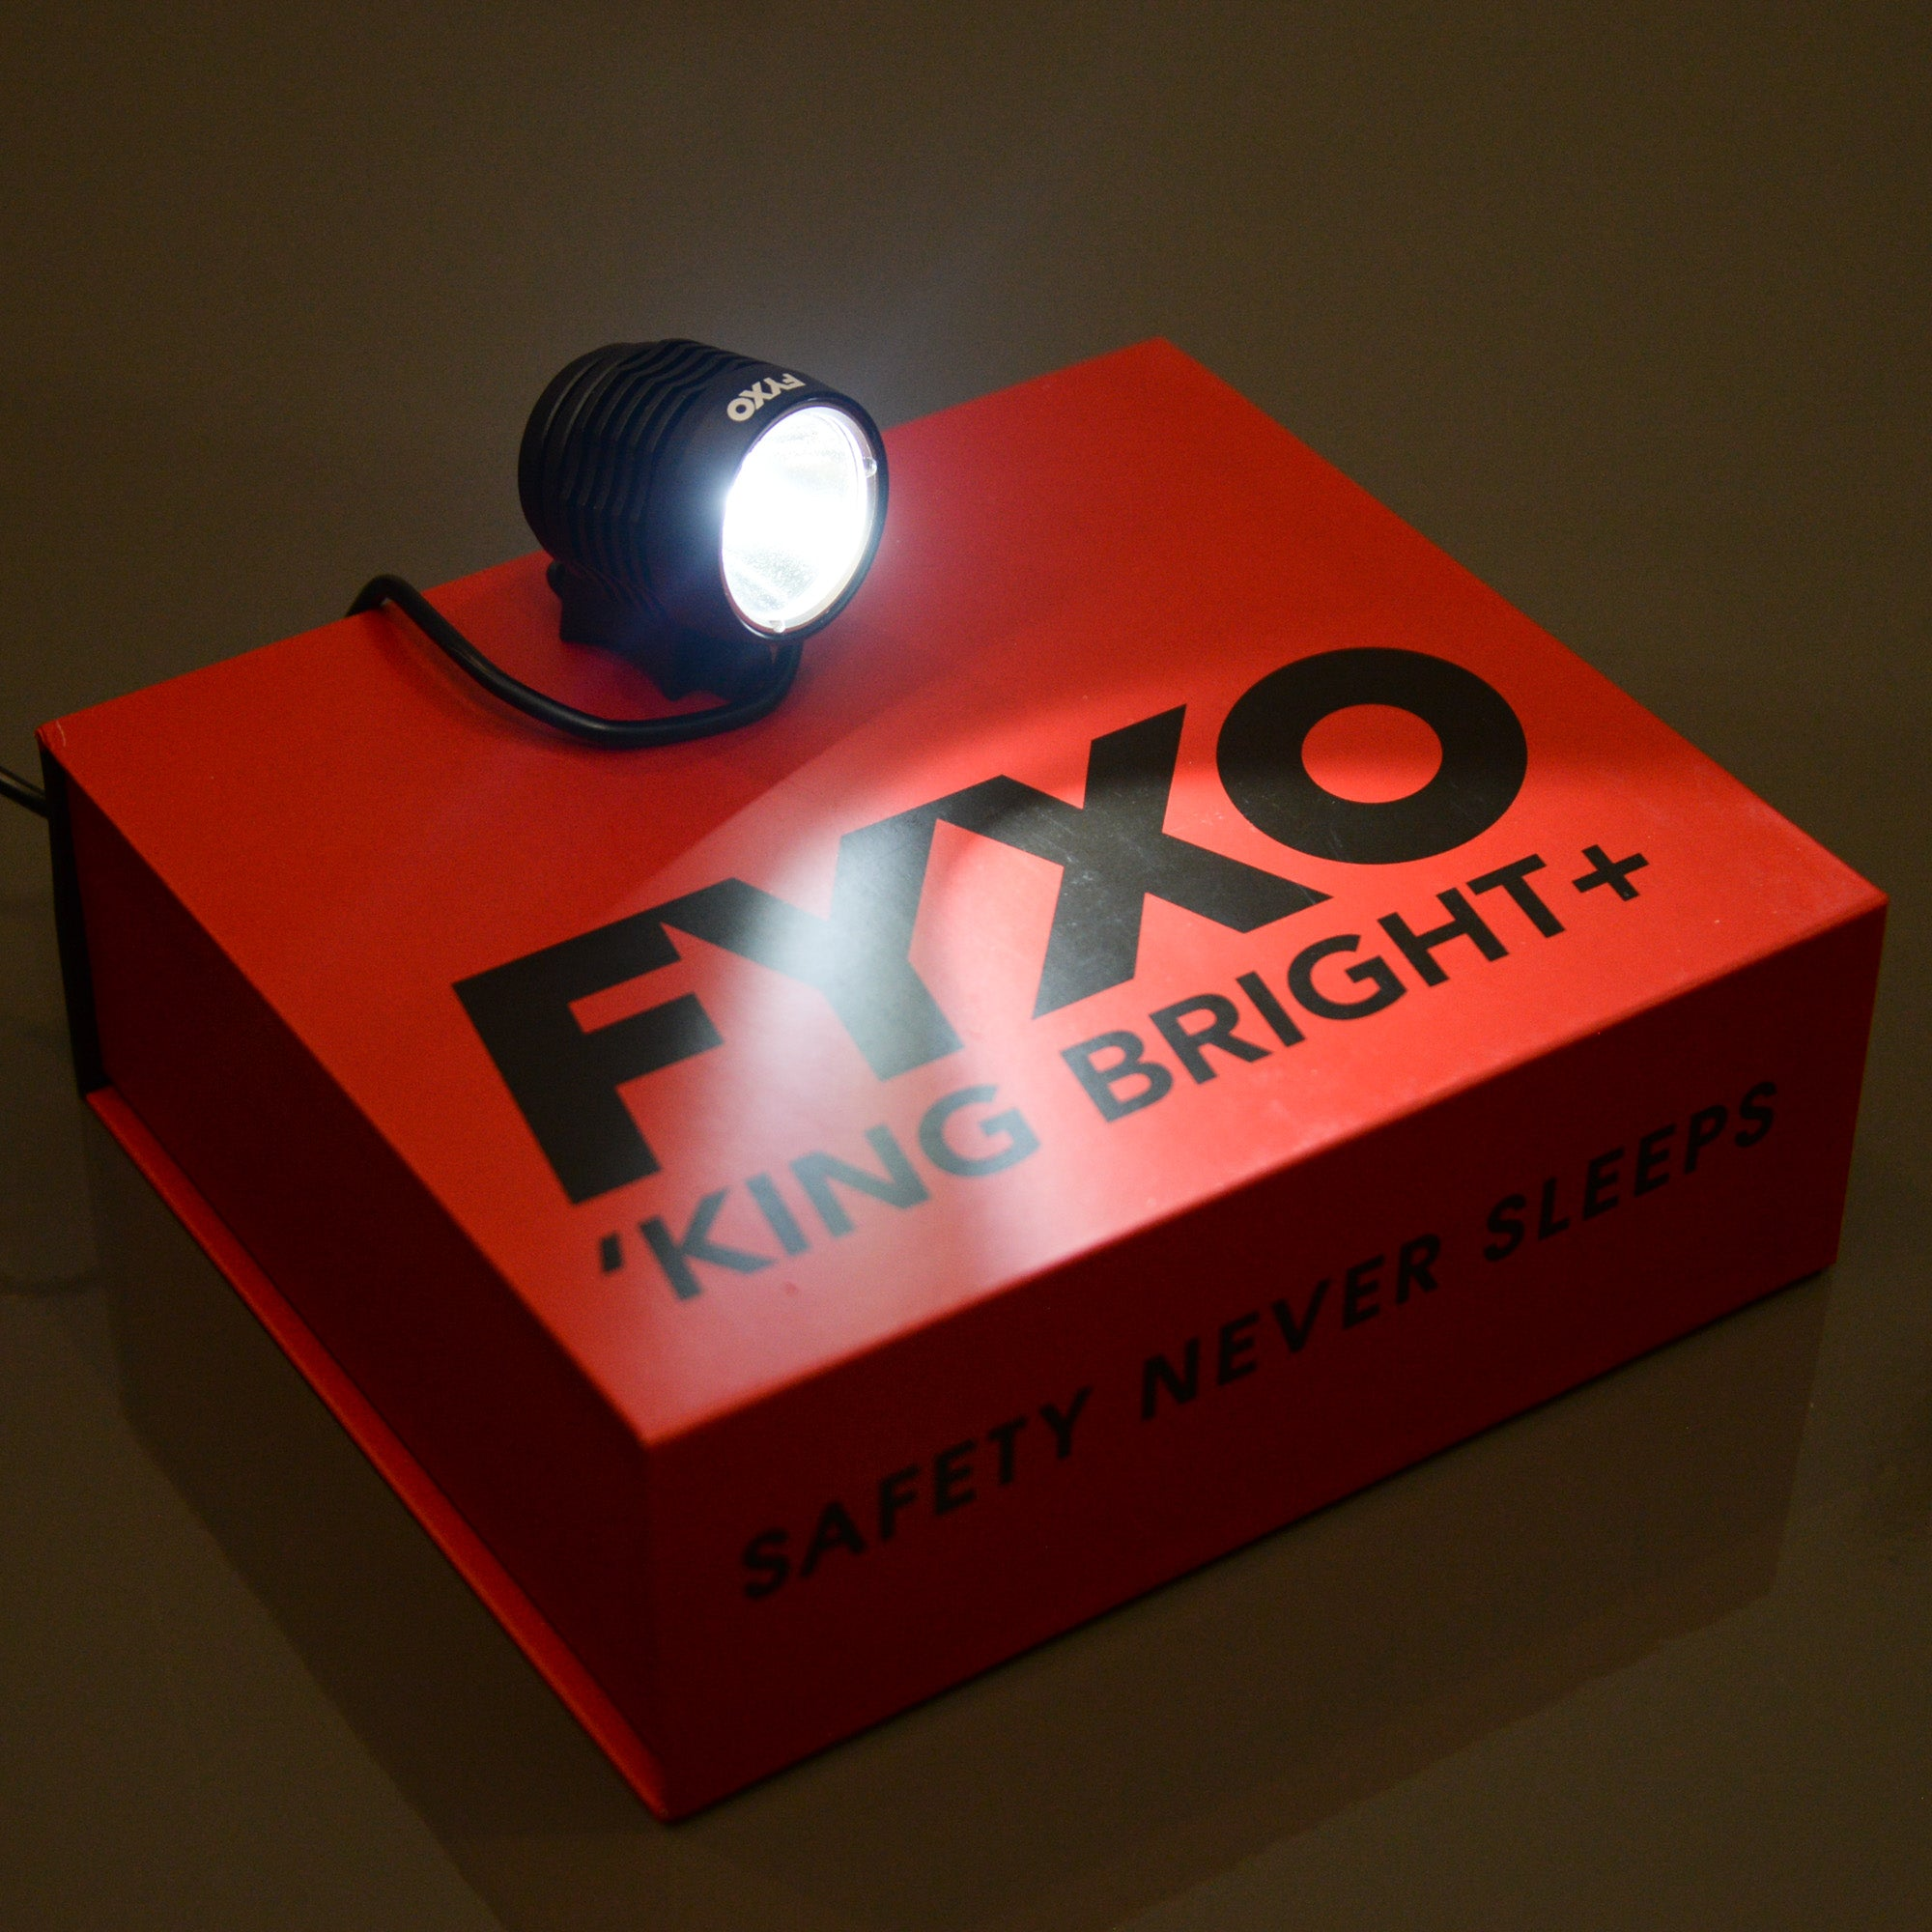 FYXO 'KING BRIGHT+ high power bicycle light - FYXO